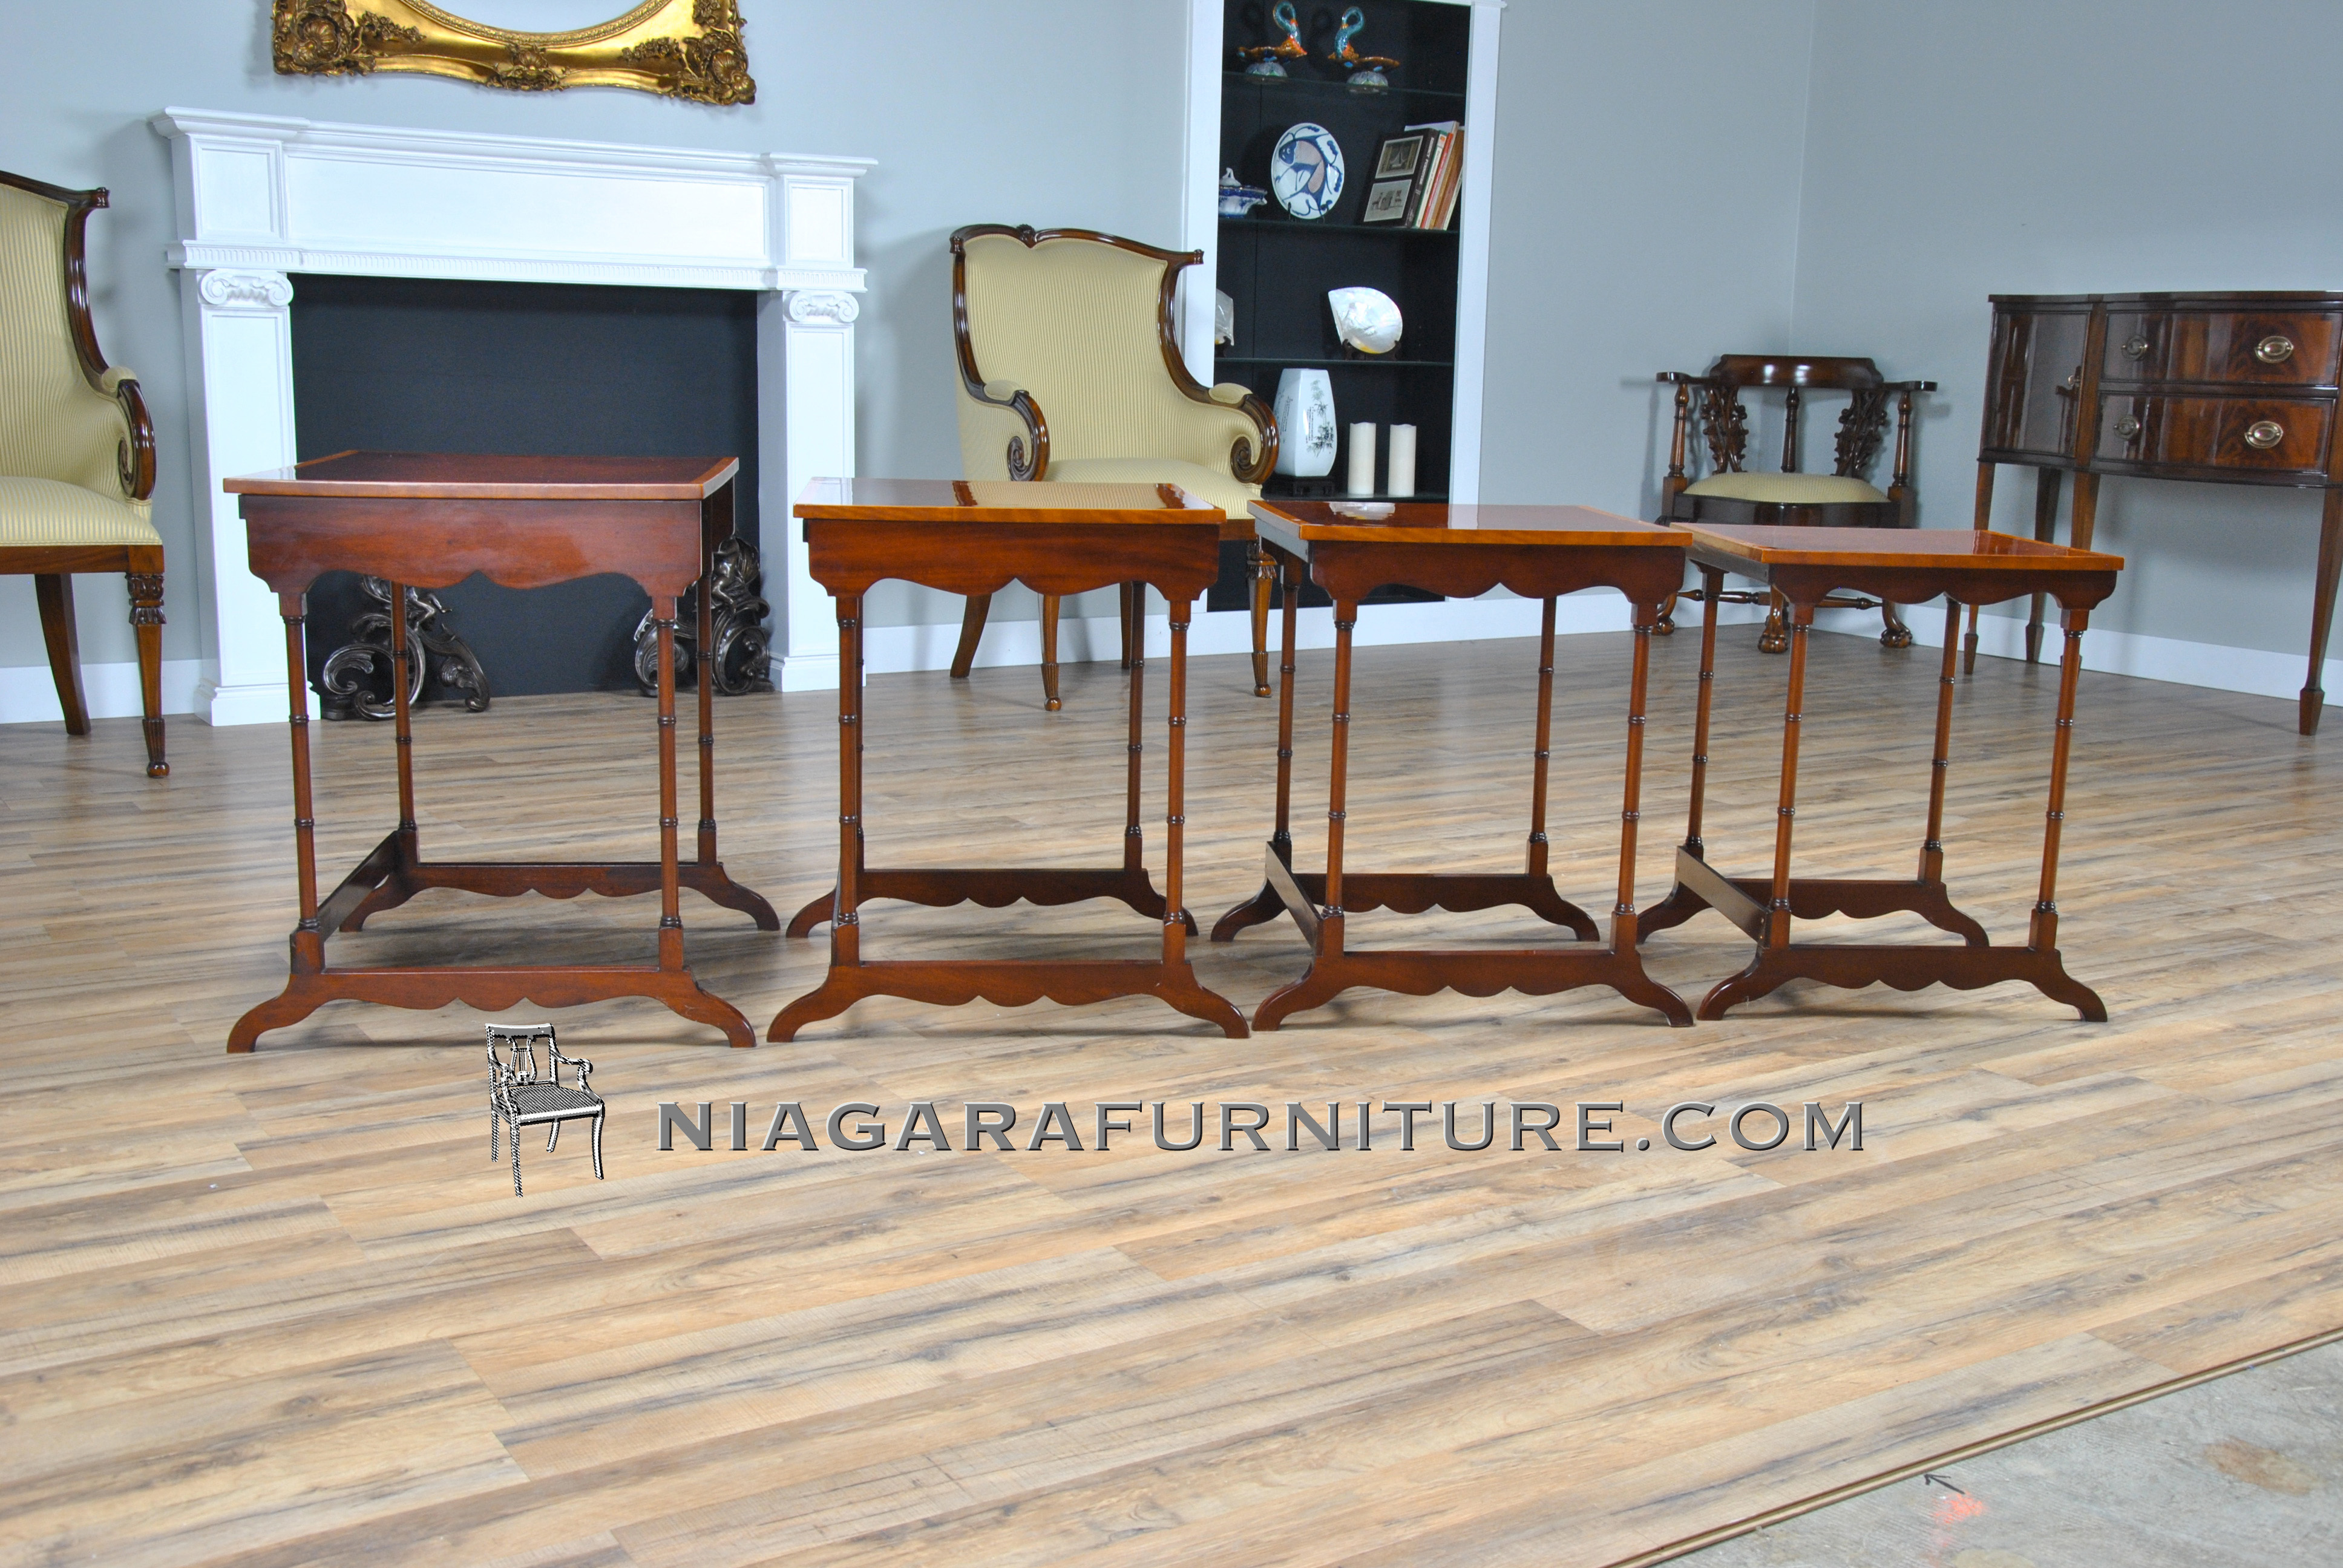 Wonderful image of Large Mahogany Nesting Tables Niagara Furniture with #6D3E25 color and 3872x2592 pixels